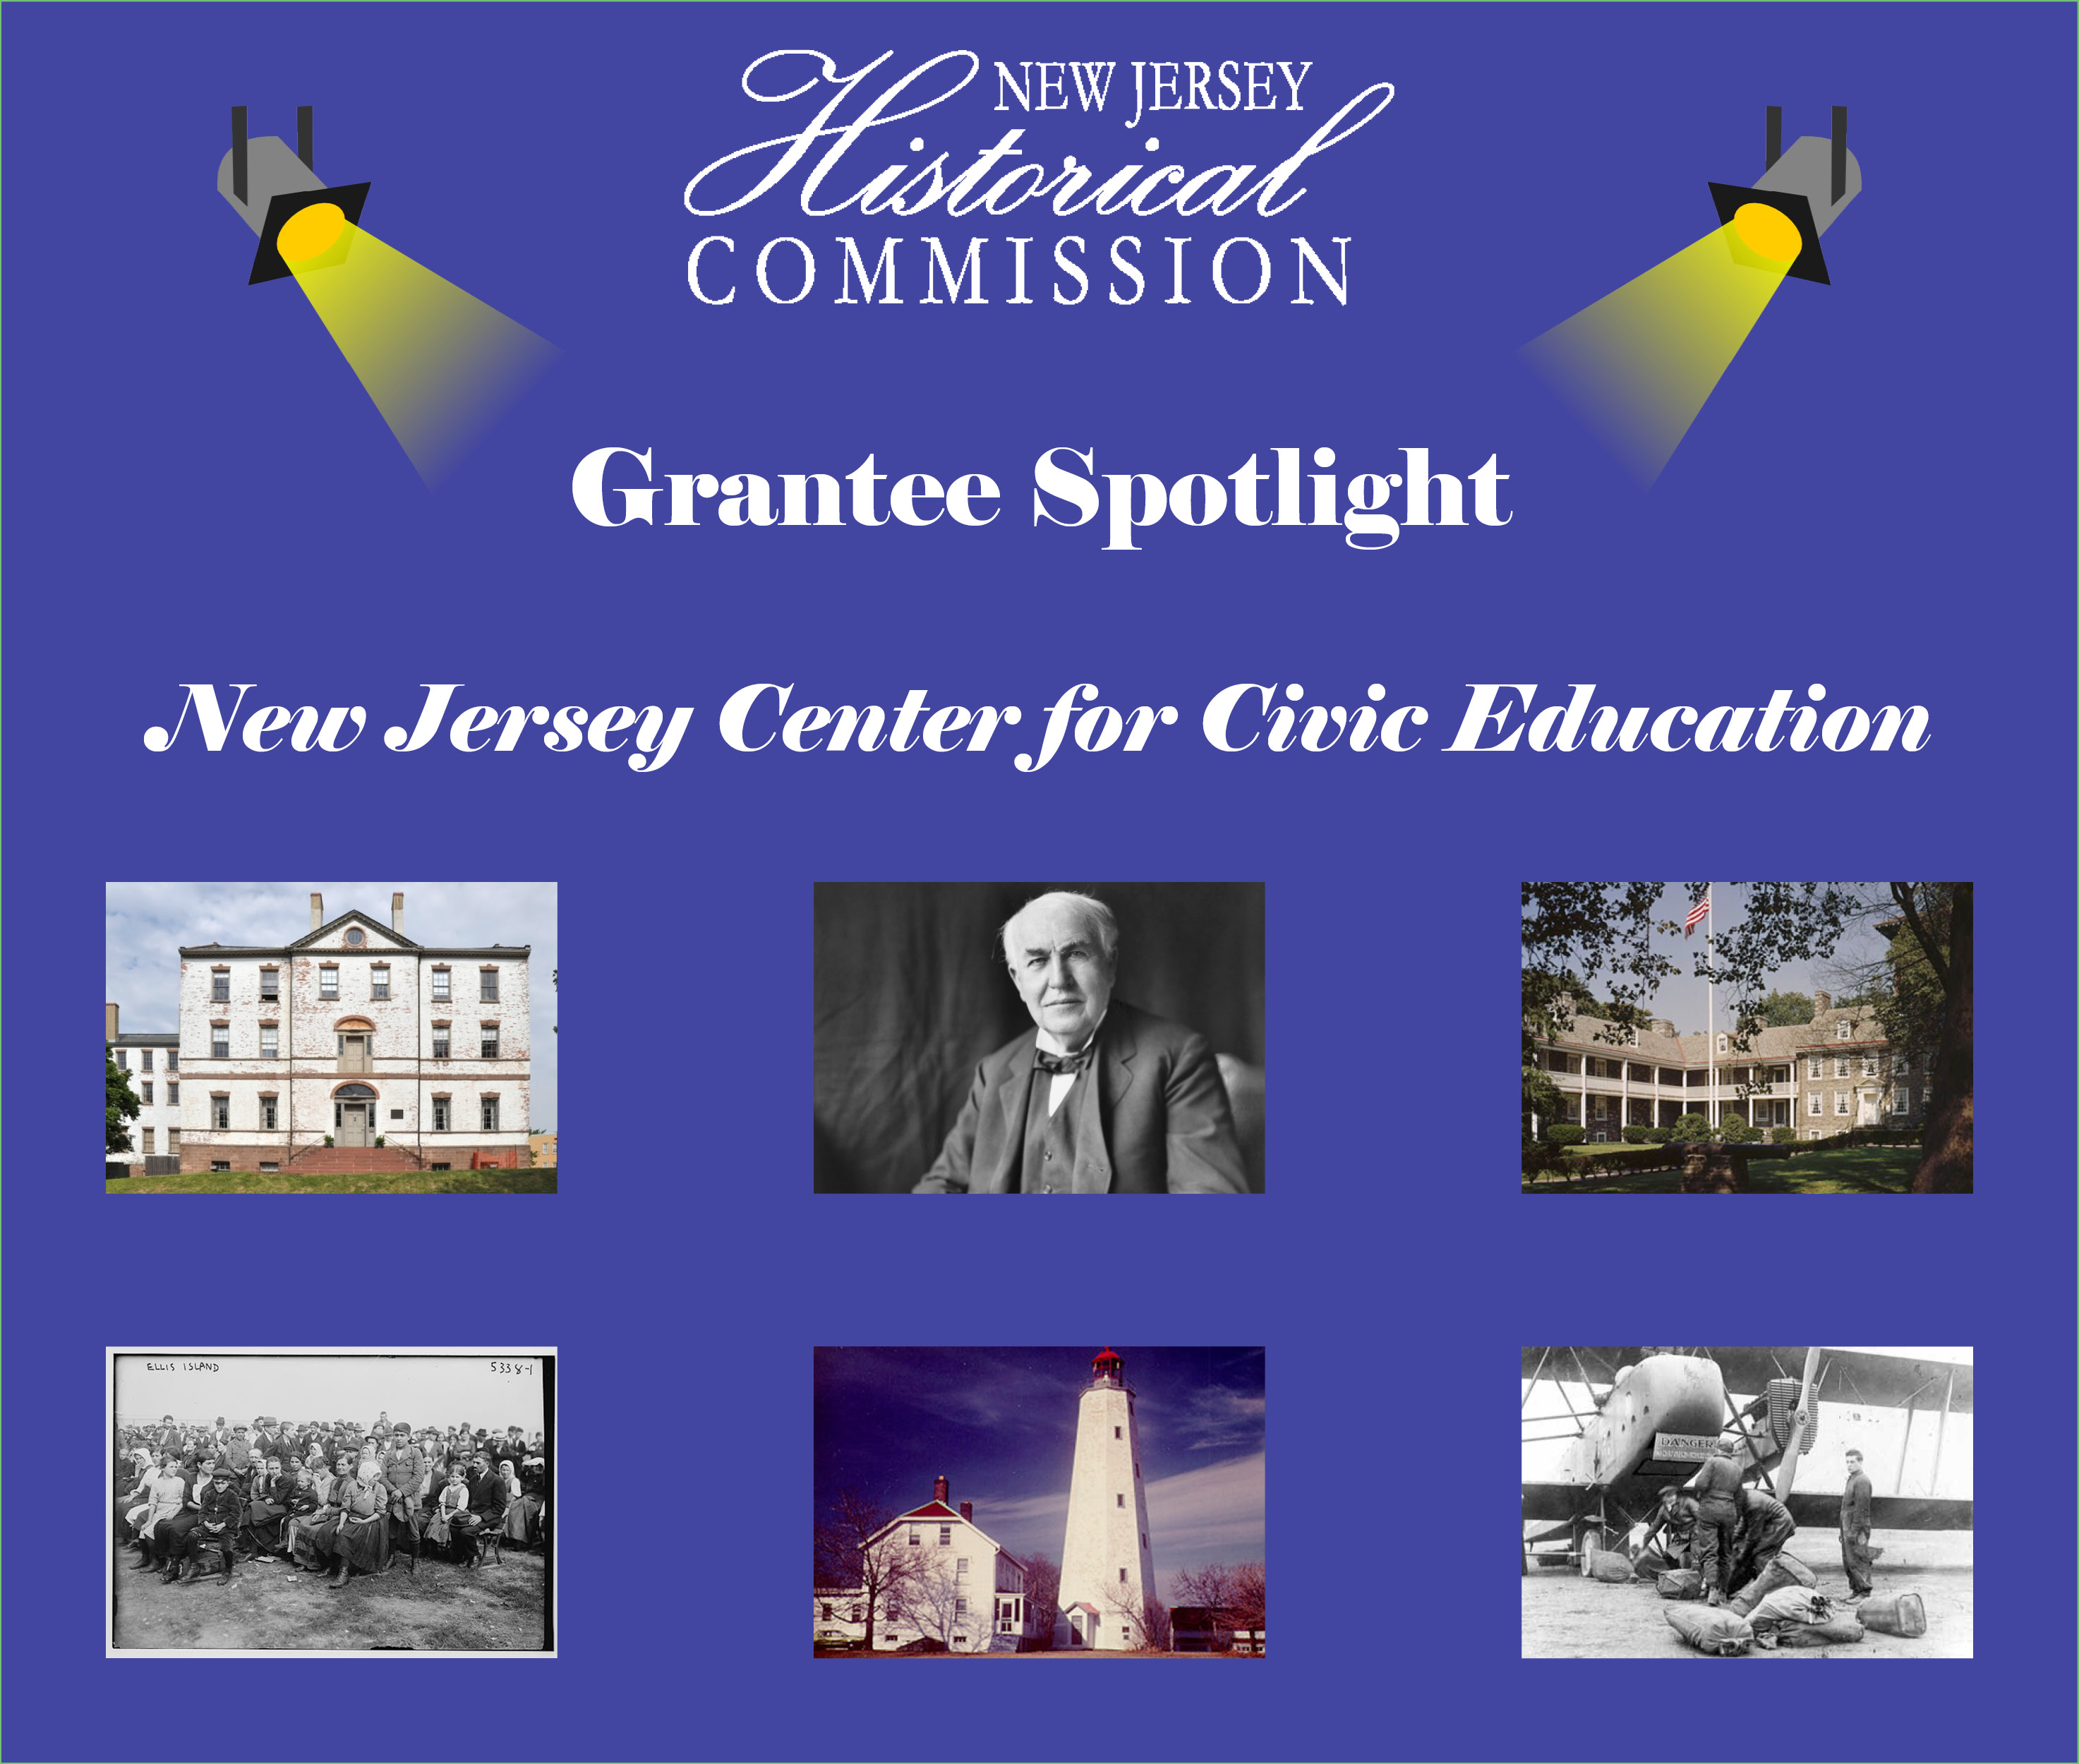 New Jersey Historical Commission (NJHC) Grantee Spotlight: New Jersey Center for Civic Education